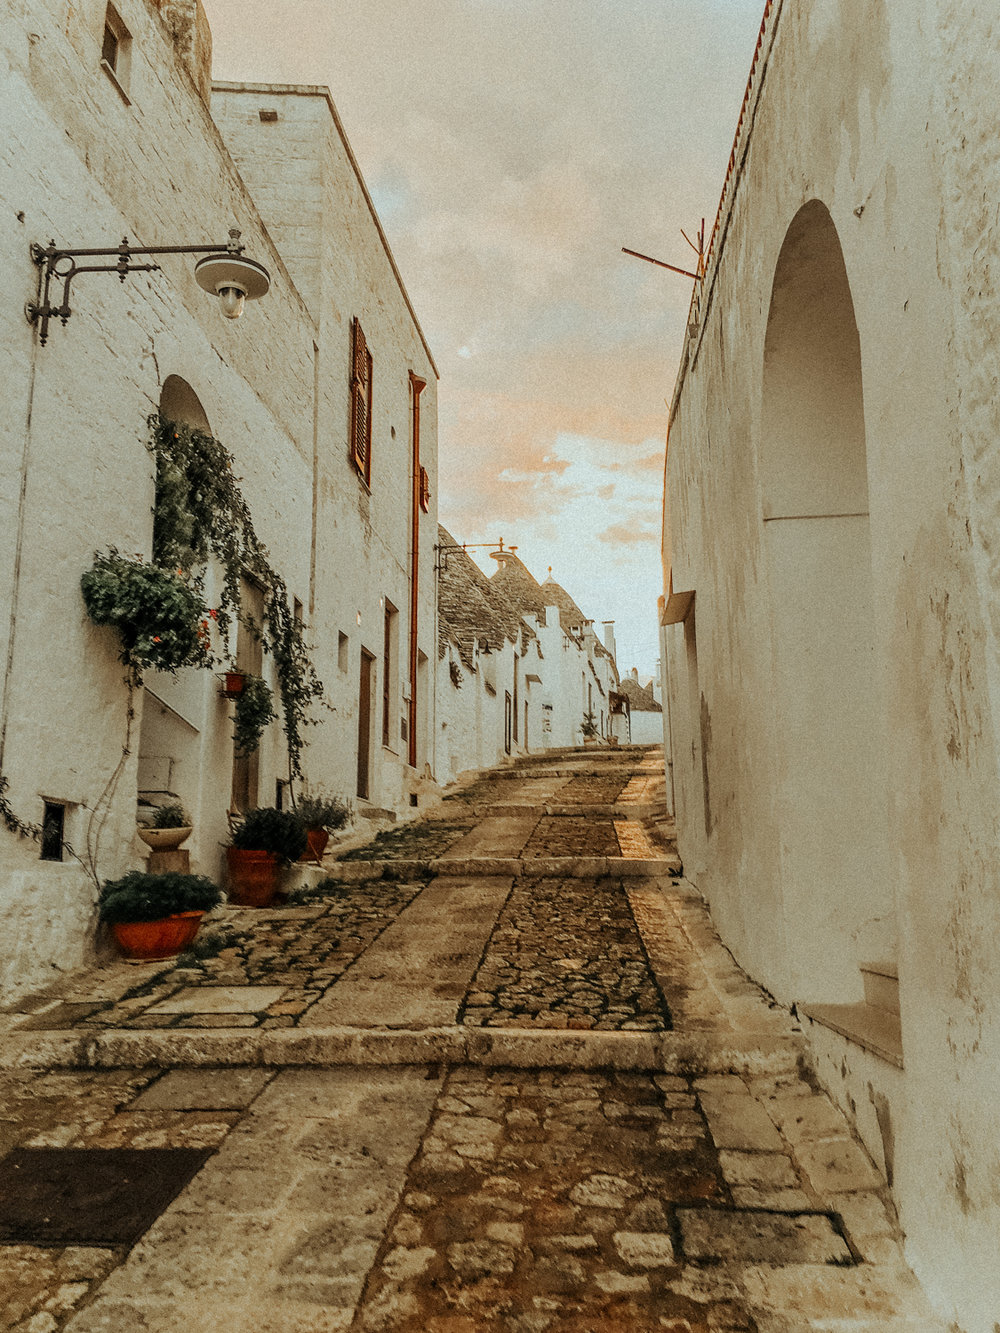 Ostuni_Alberobello_Puglia_Italia_illumelation (4 of 7).jpg